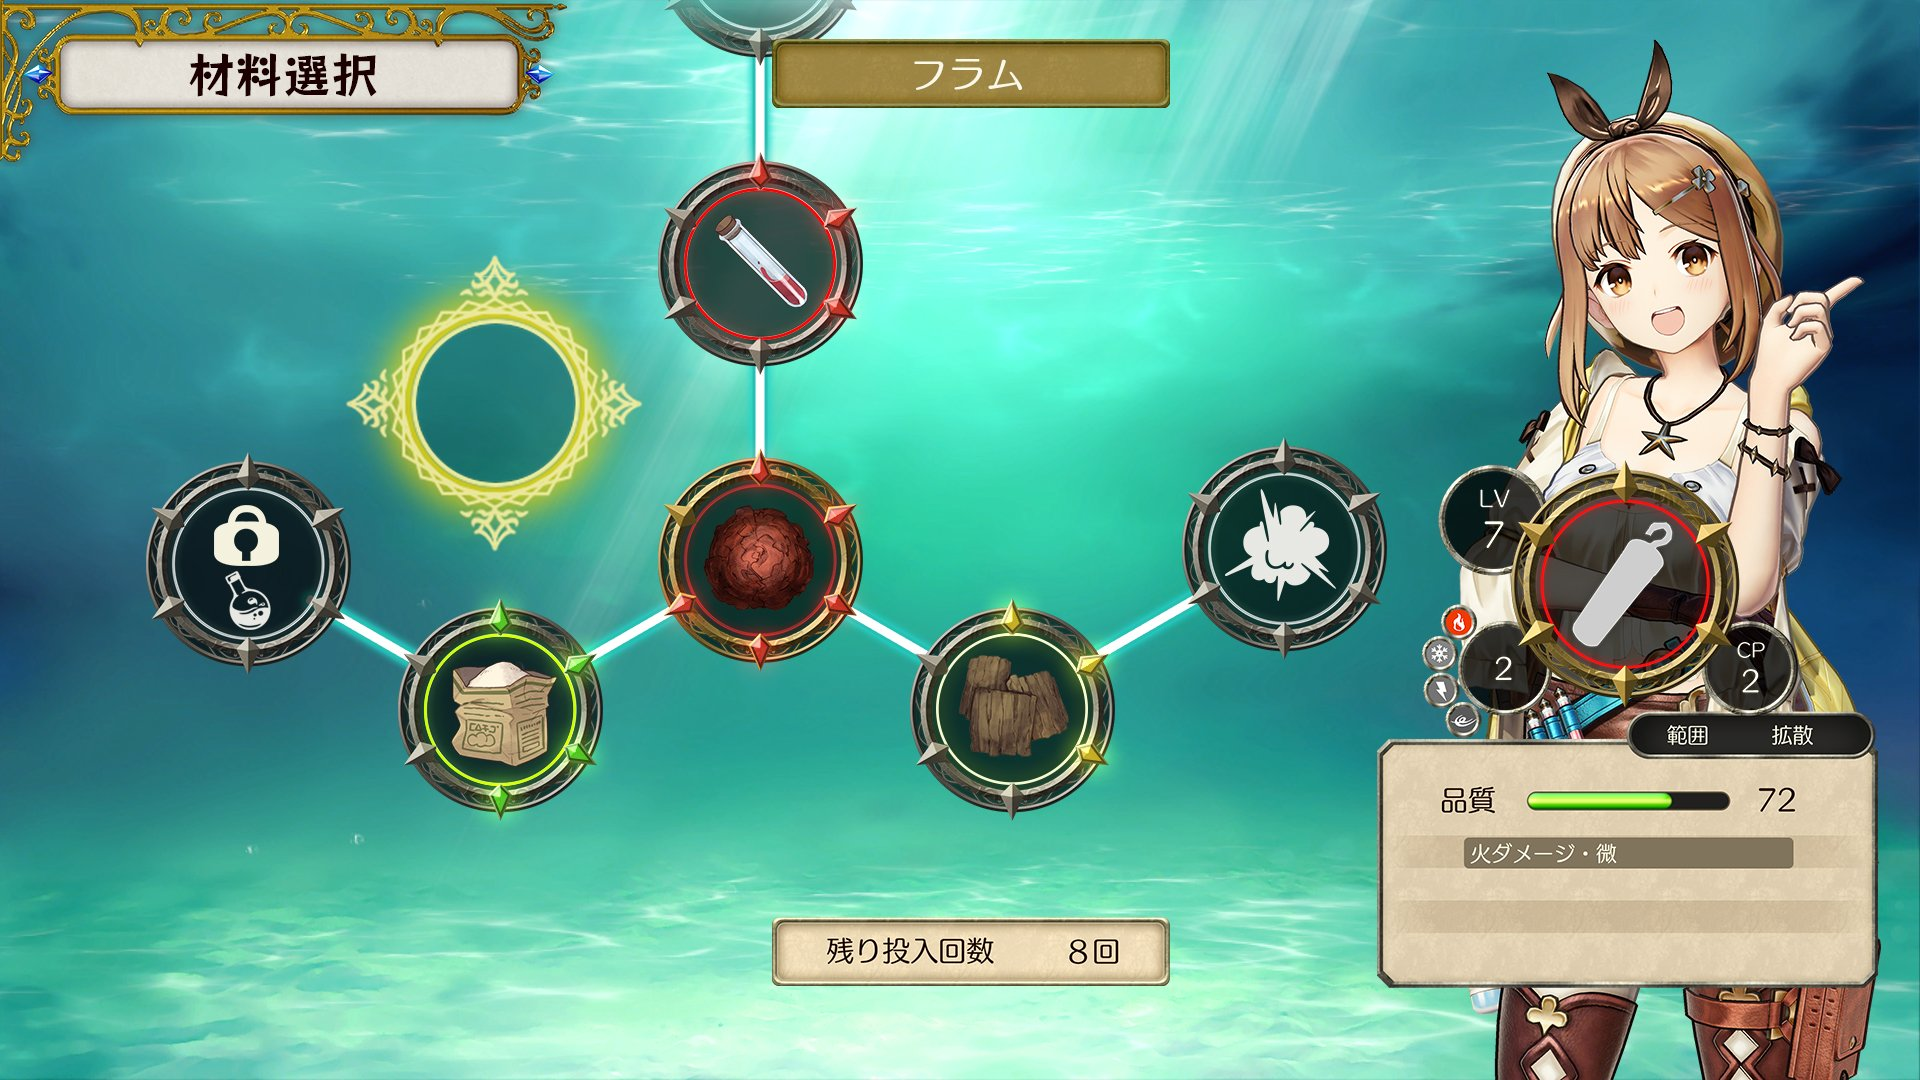 The new skill tree is reminiscent of the one from FFX